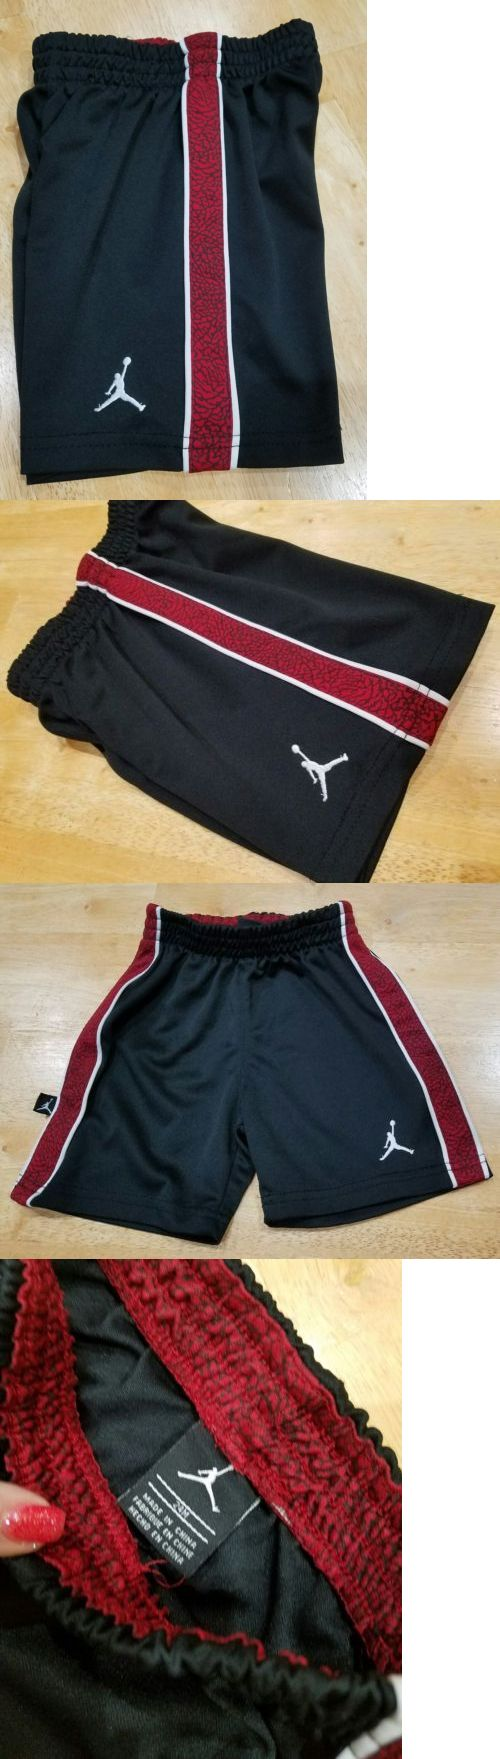 Michael Jordan Baby Clothing: Michael Jordan Basketball Shorts Size 24 Months Black And Red - Nwot -> BUY IT NOW ONLY: $2.99 on eBay!